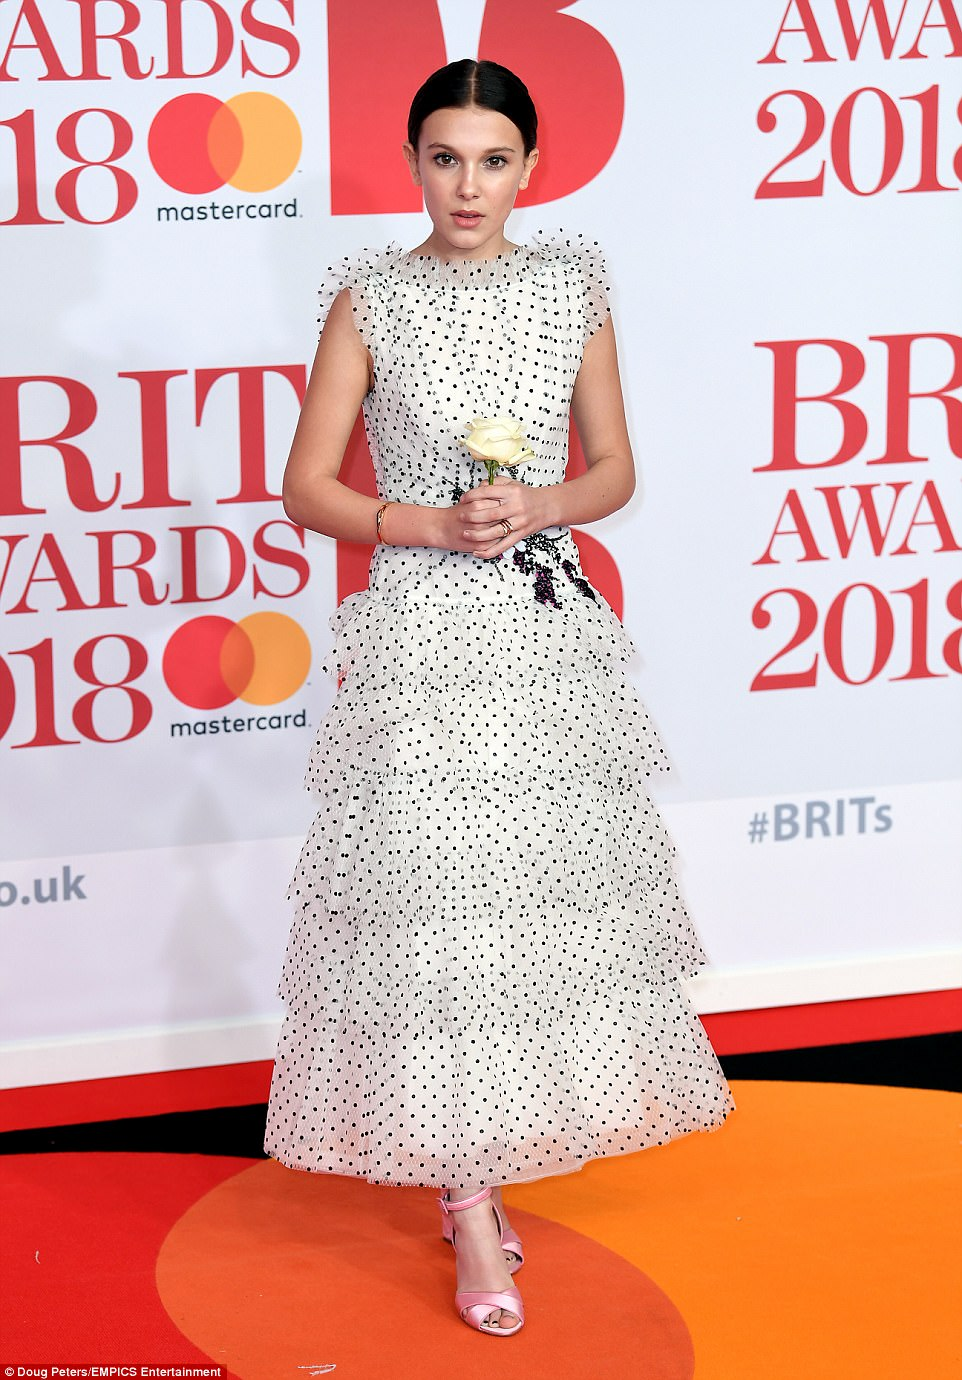 Music lover: Millie Bobby Brown looked thrilled to join a host of stars at the BRIT Awards at London's O2 on Wednesday